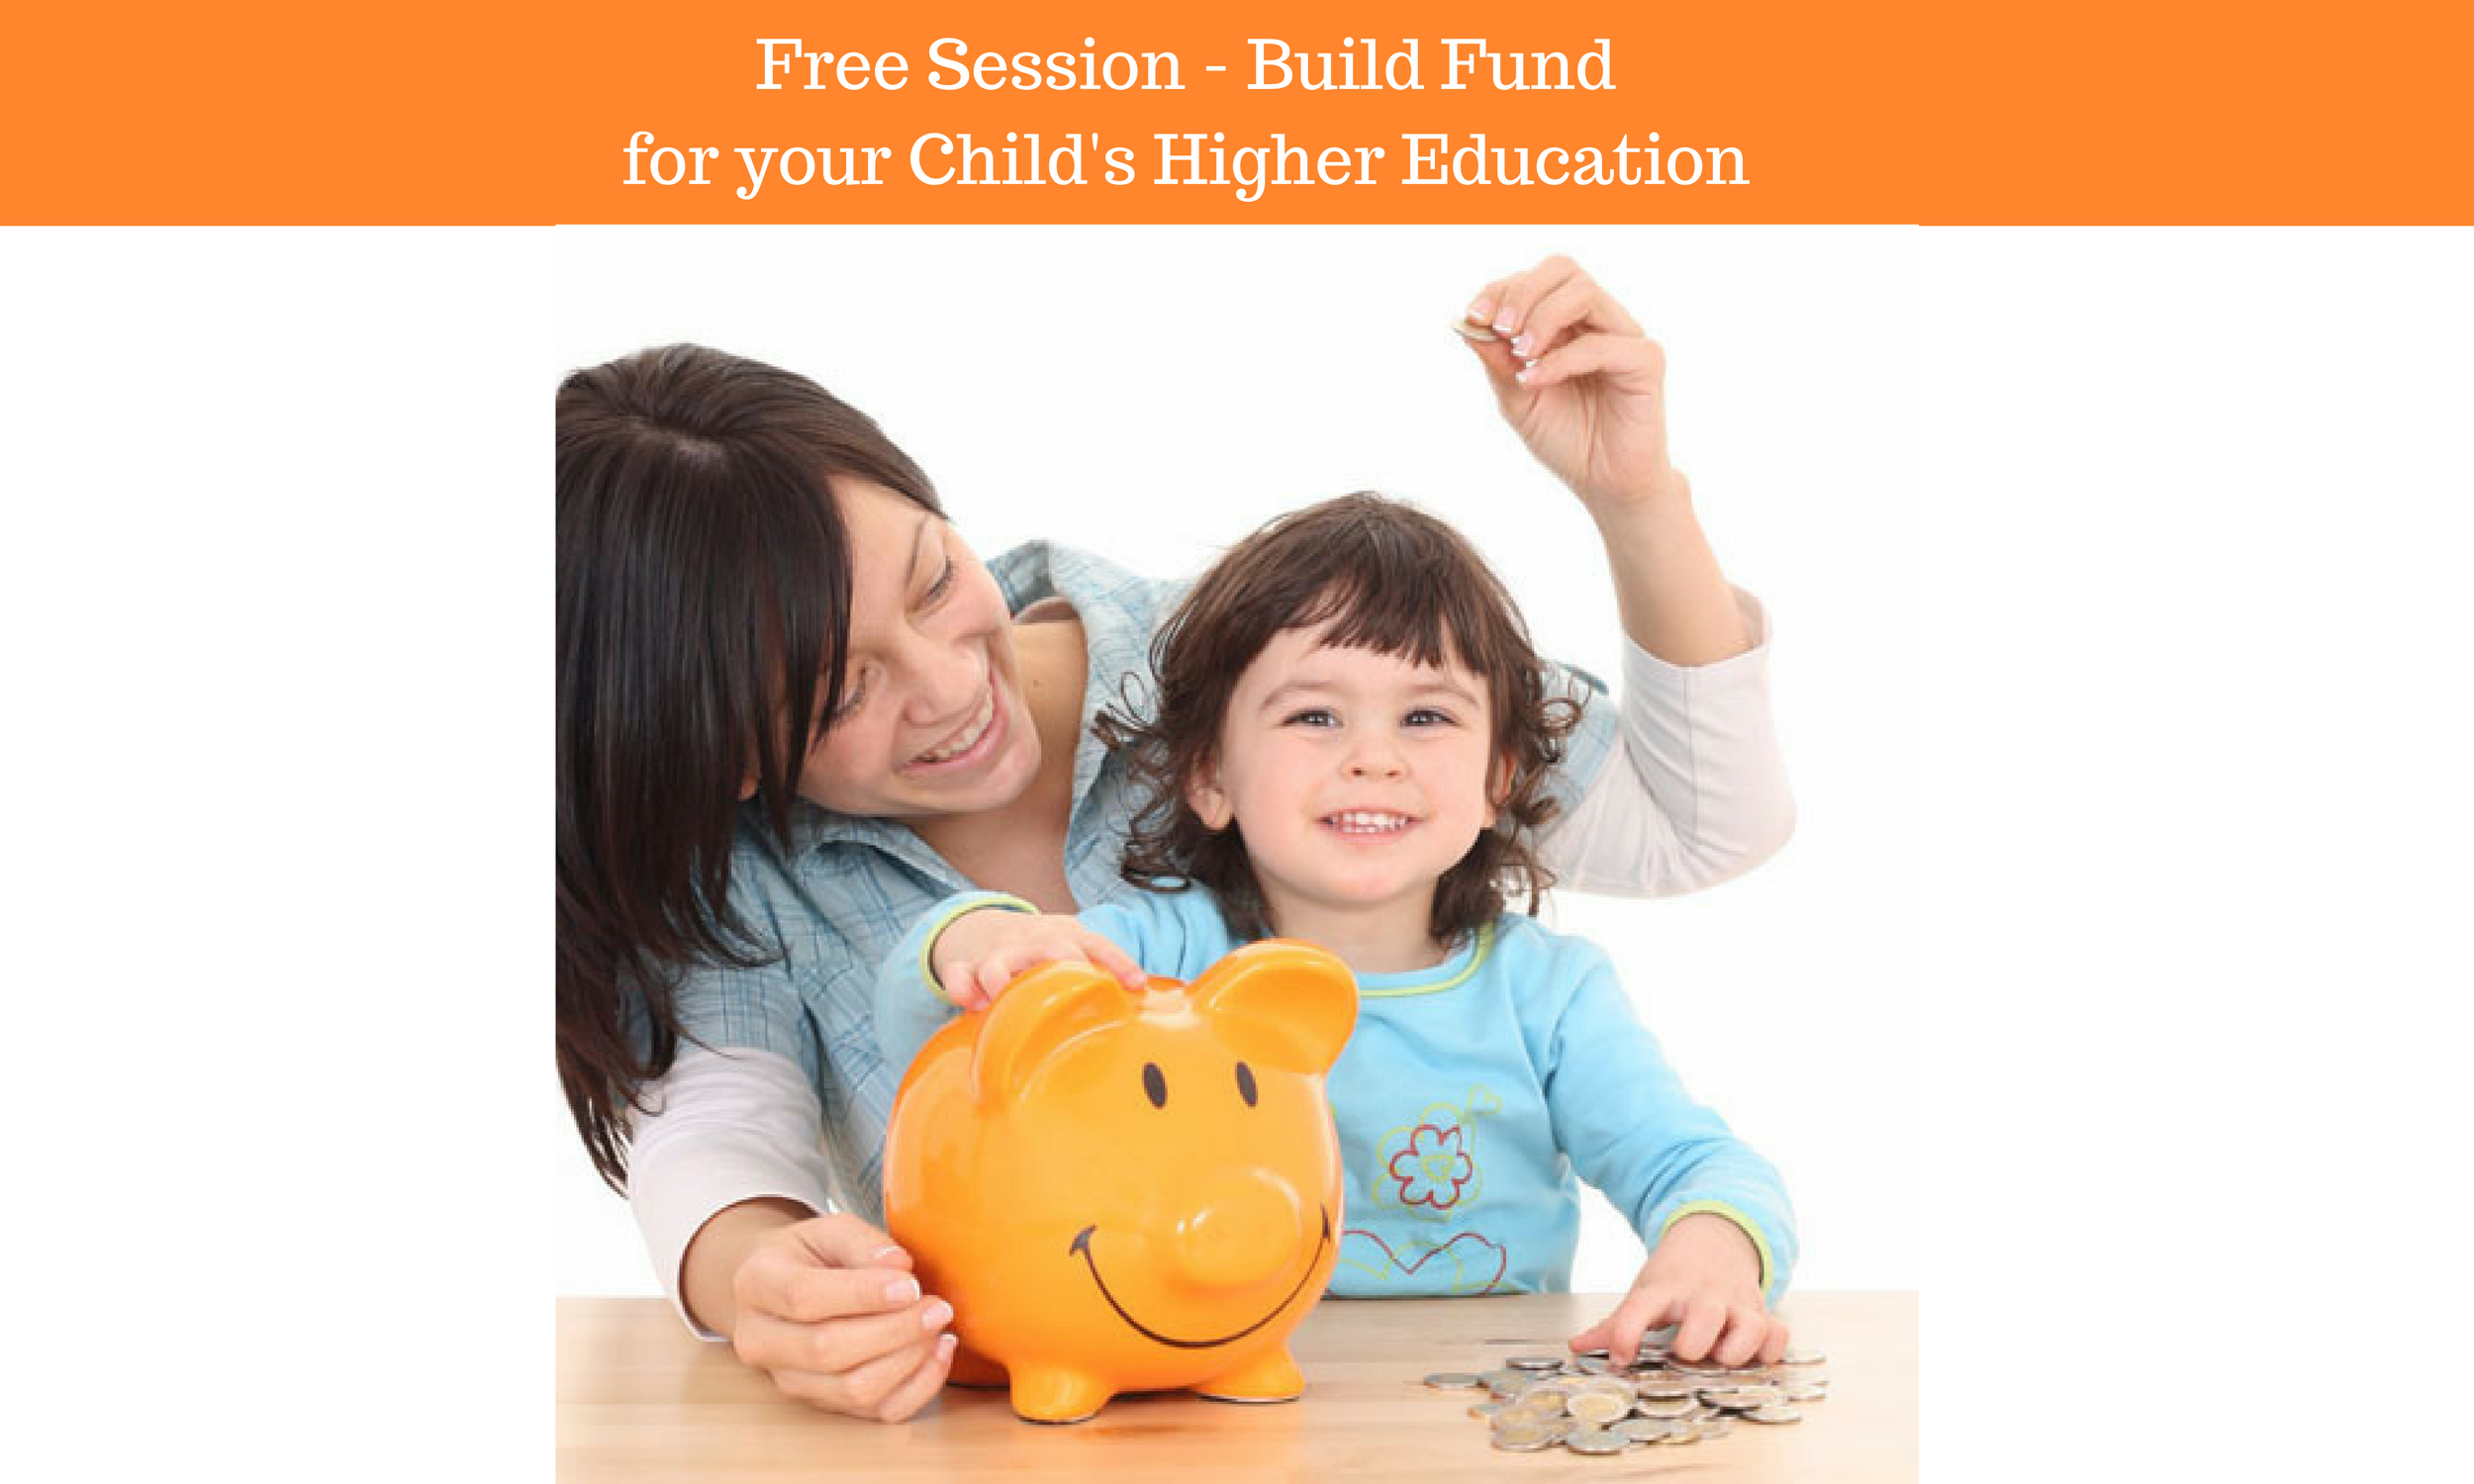 Build Fund for your Child's Higher Education - Free Session